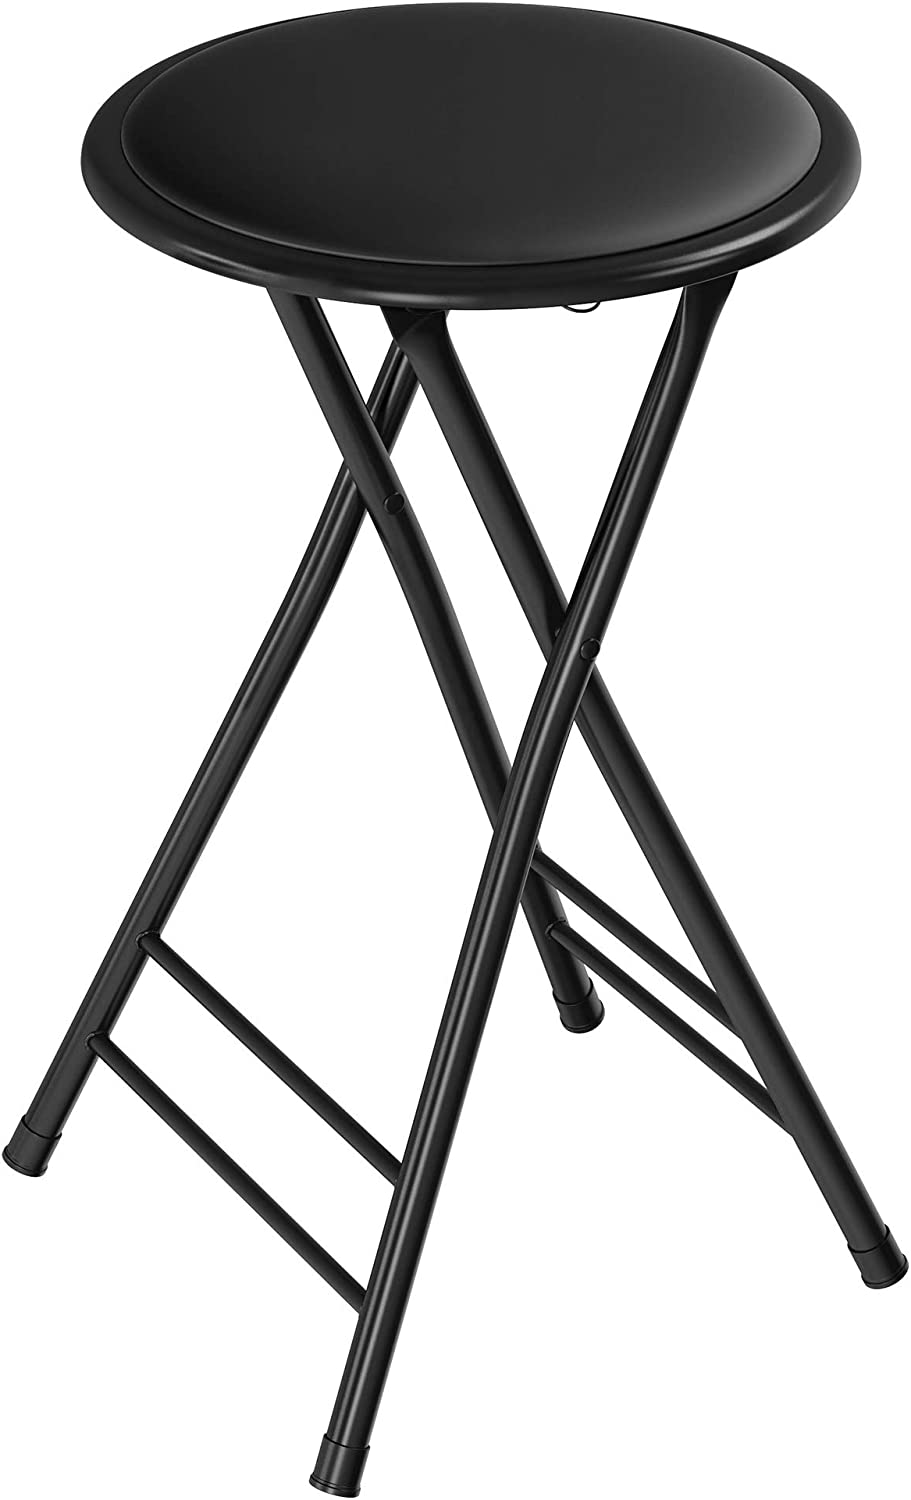 Folding Stool – Heavy Duty 24-Inch Collapsible Padded Round Stool with 300 Pound Capacity for Dorm, Rec Room or Gameroom by Trademark Home (Black)